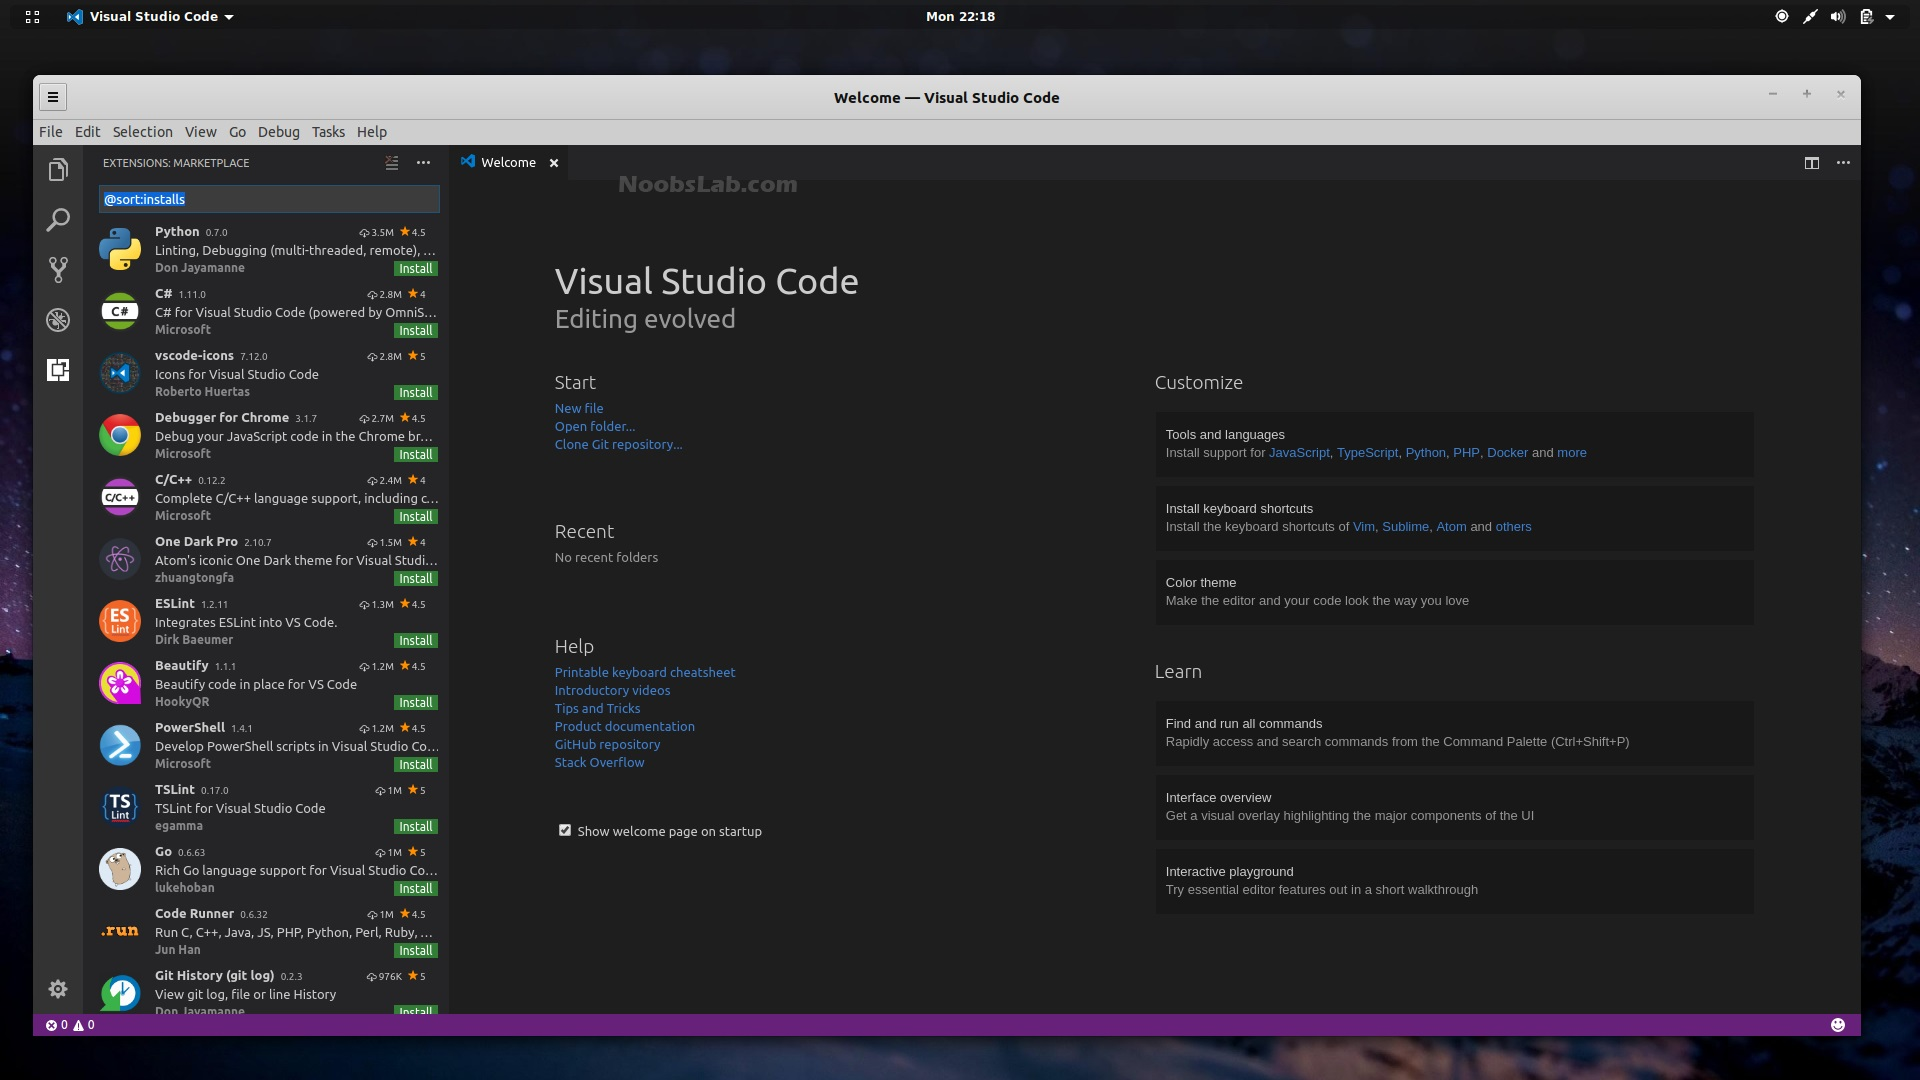 Visual Studio: A Versatile And Open Source Code Editor